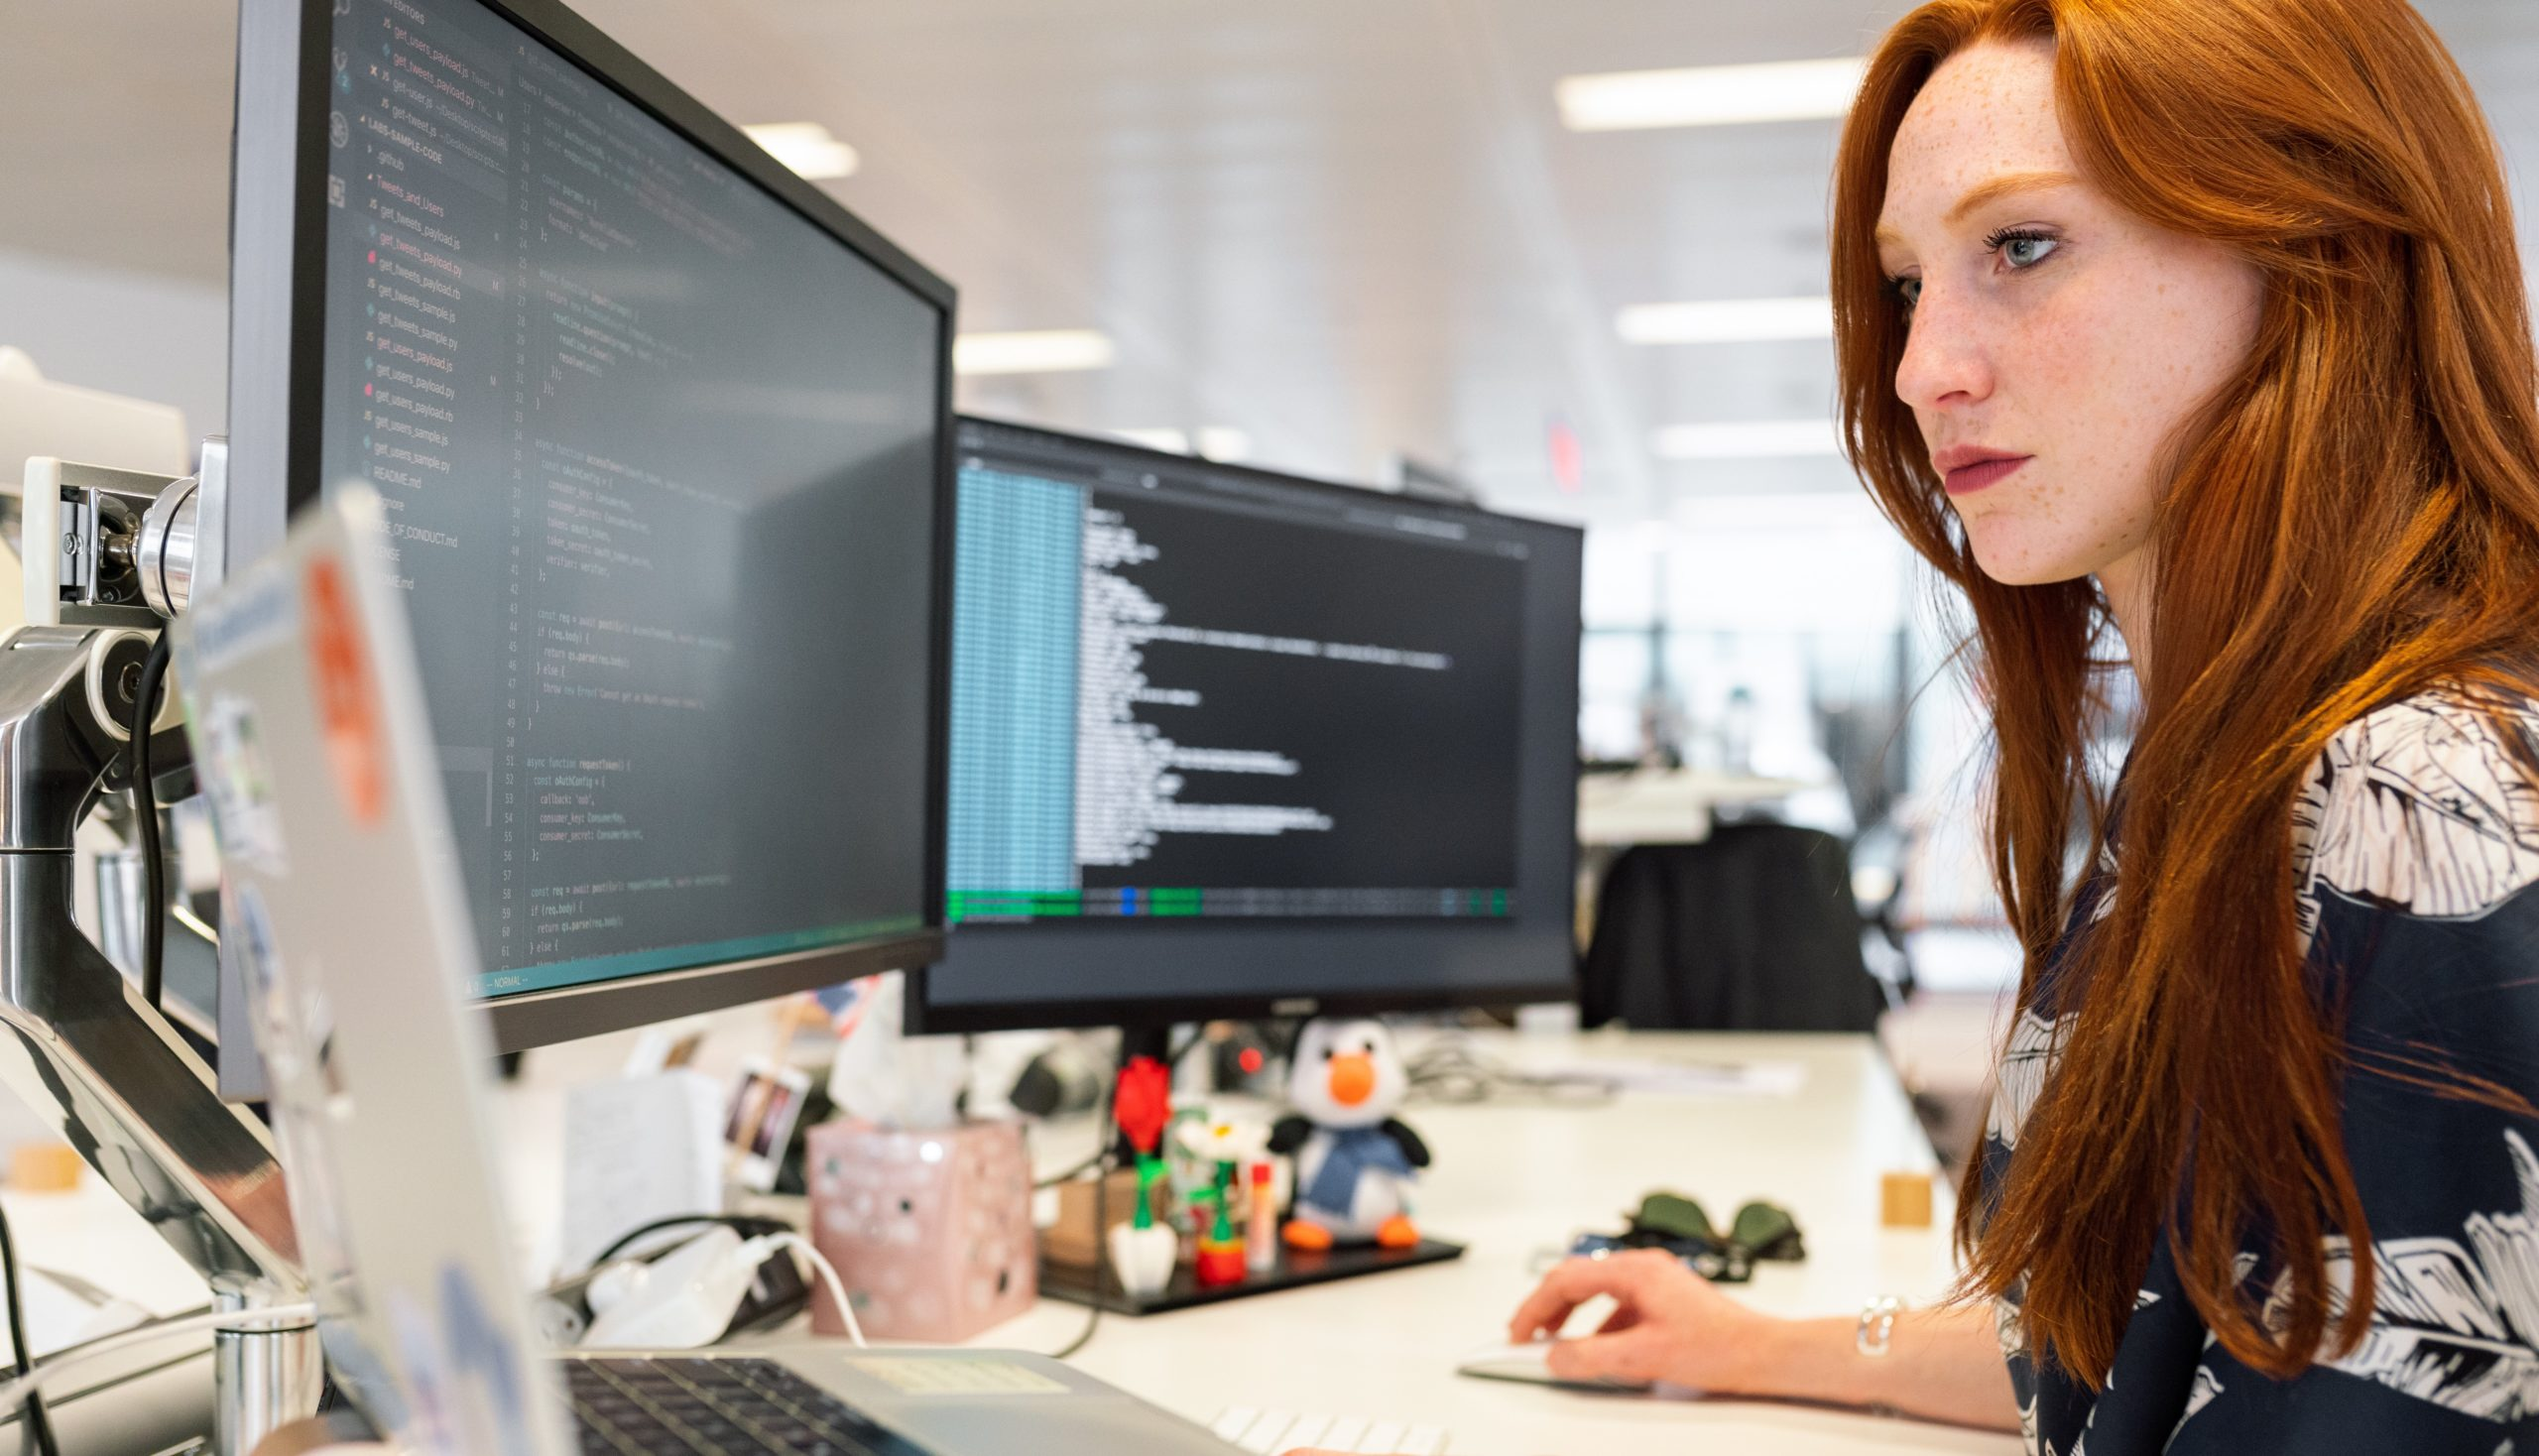 Young Woman in front of Monitors Writing Code